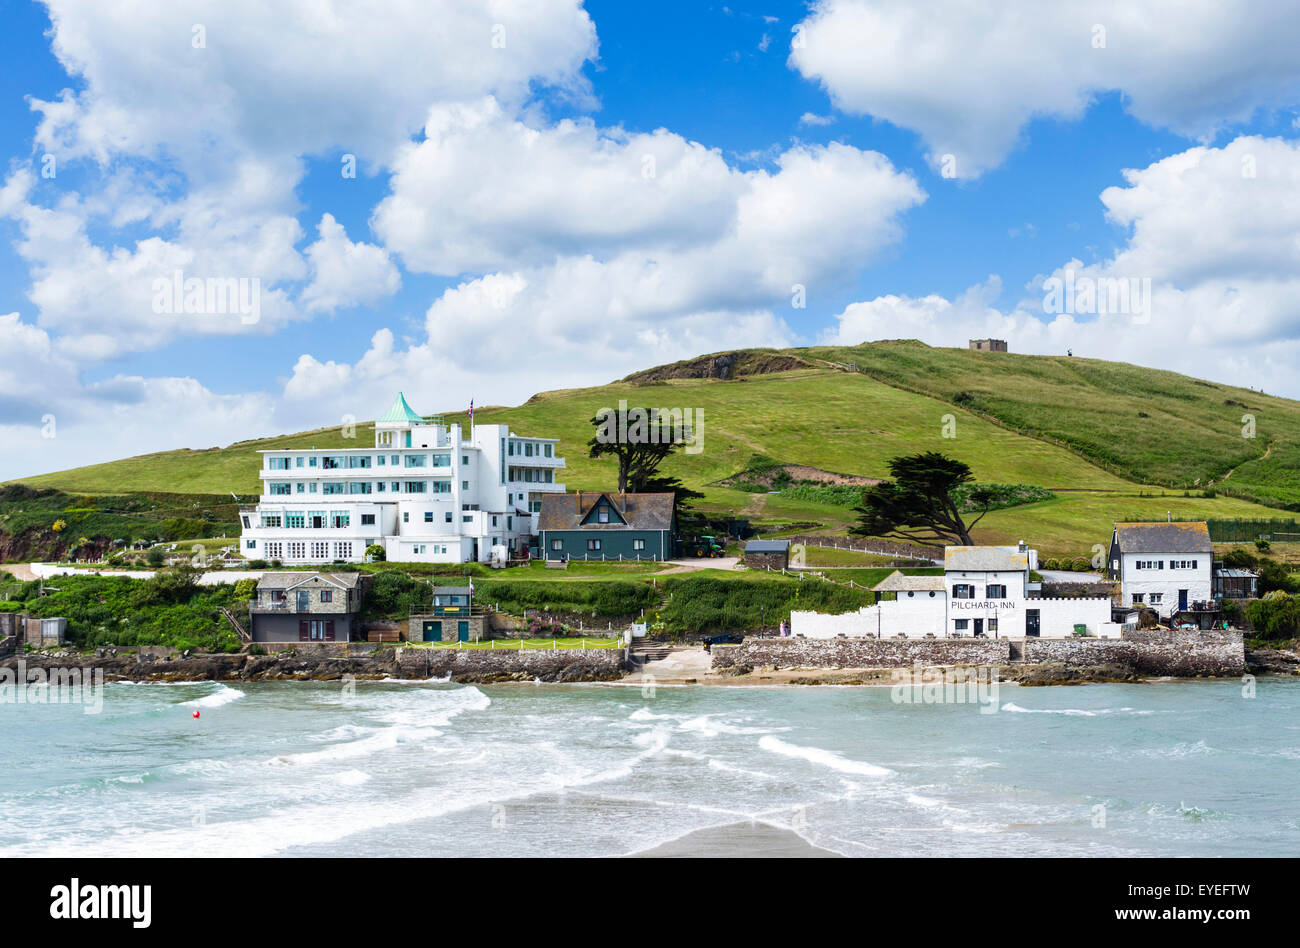 The Burgh Island Hotel and Pilchard Inn on Burgh Island, Bigbury-on-Sea, Devon, England, UK - Stock Image